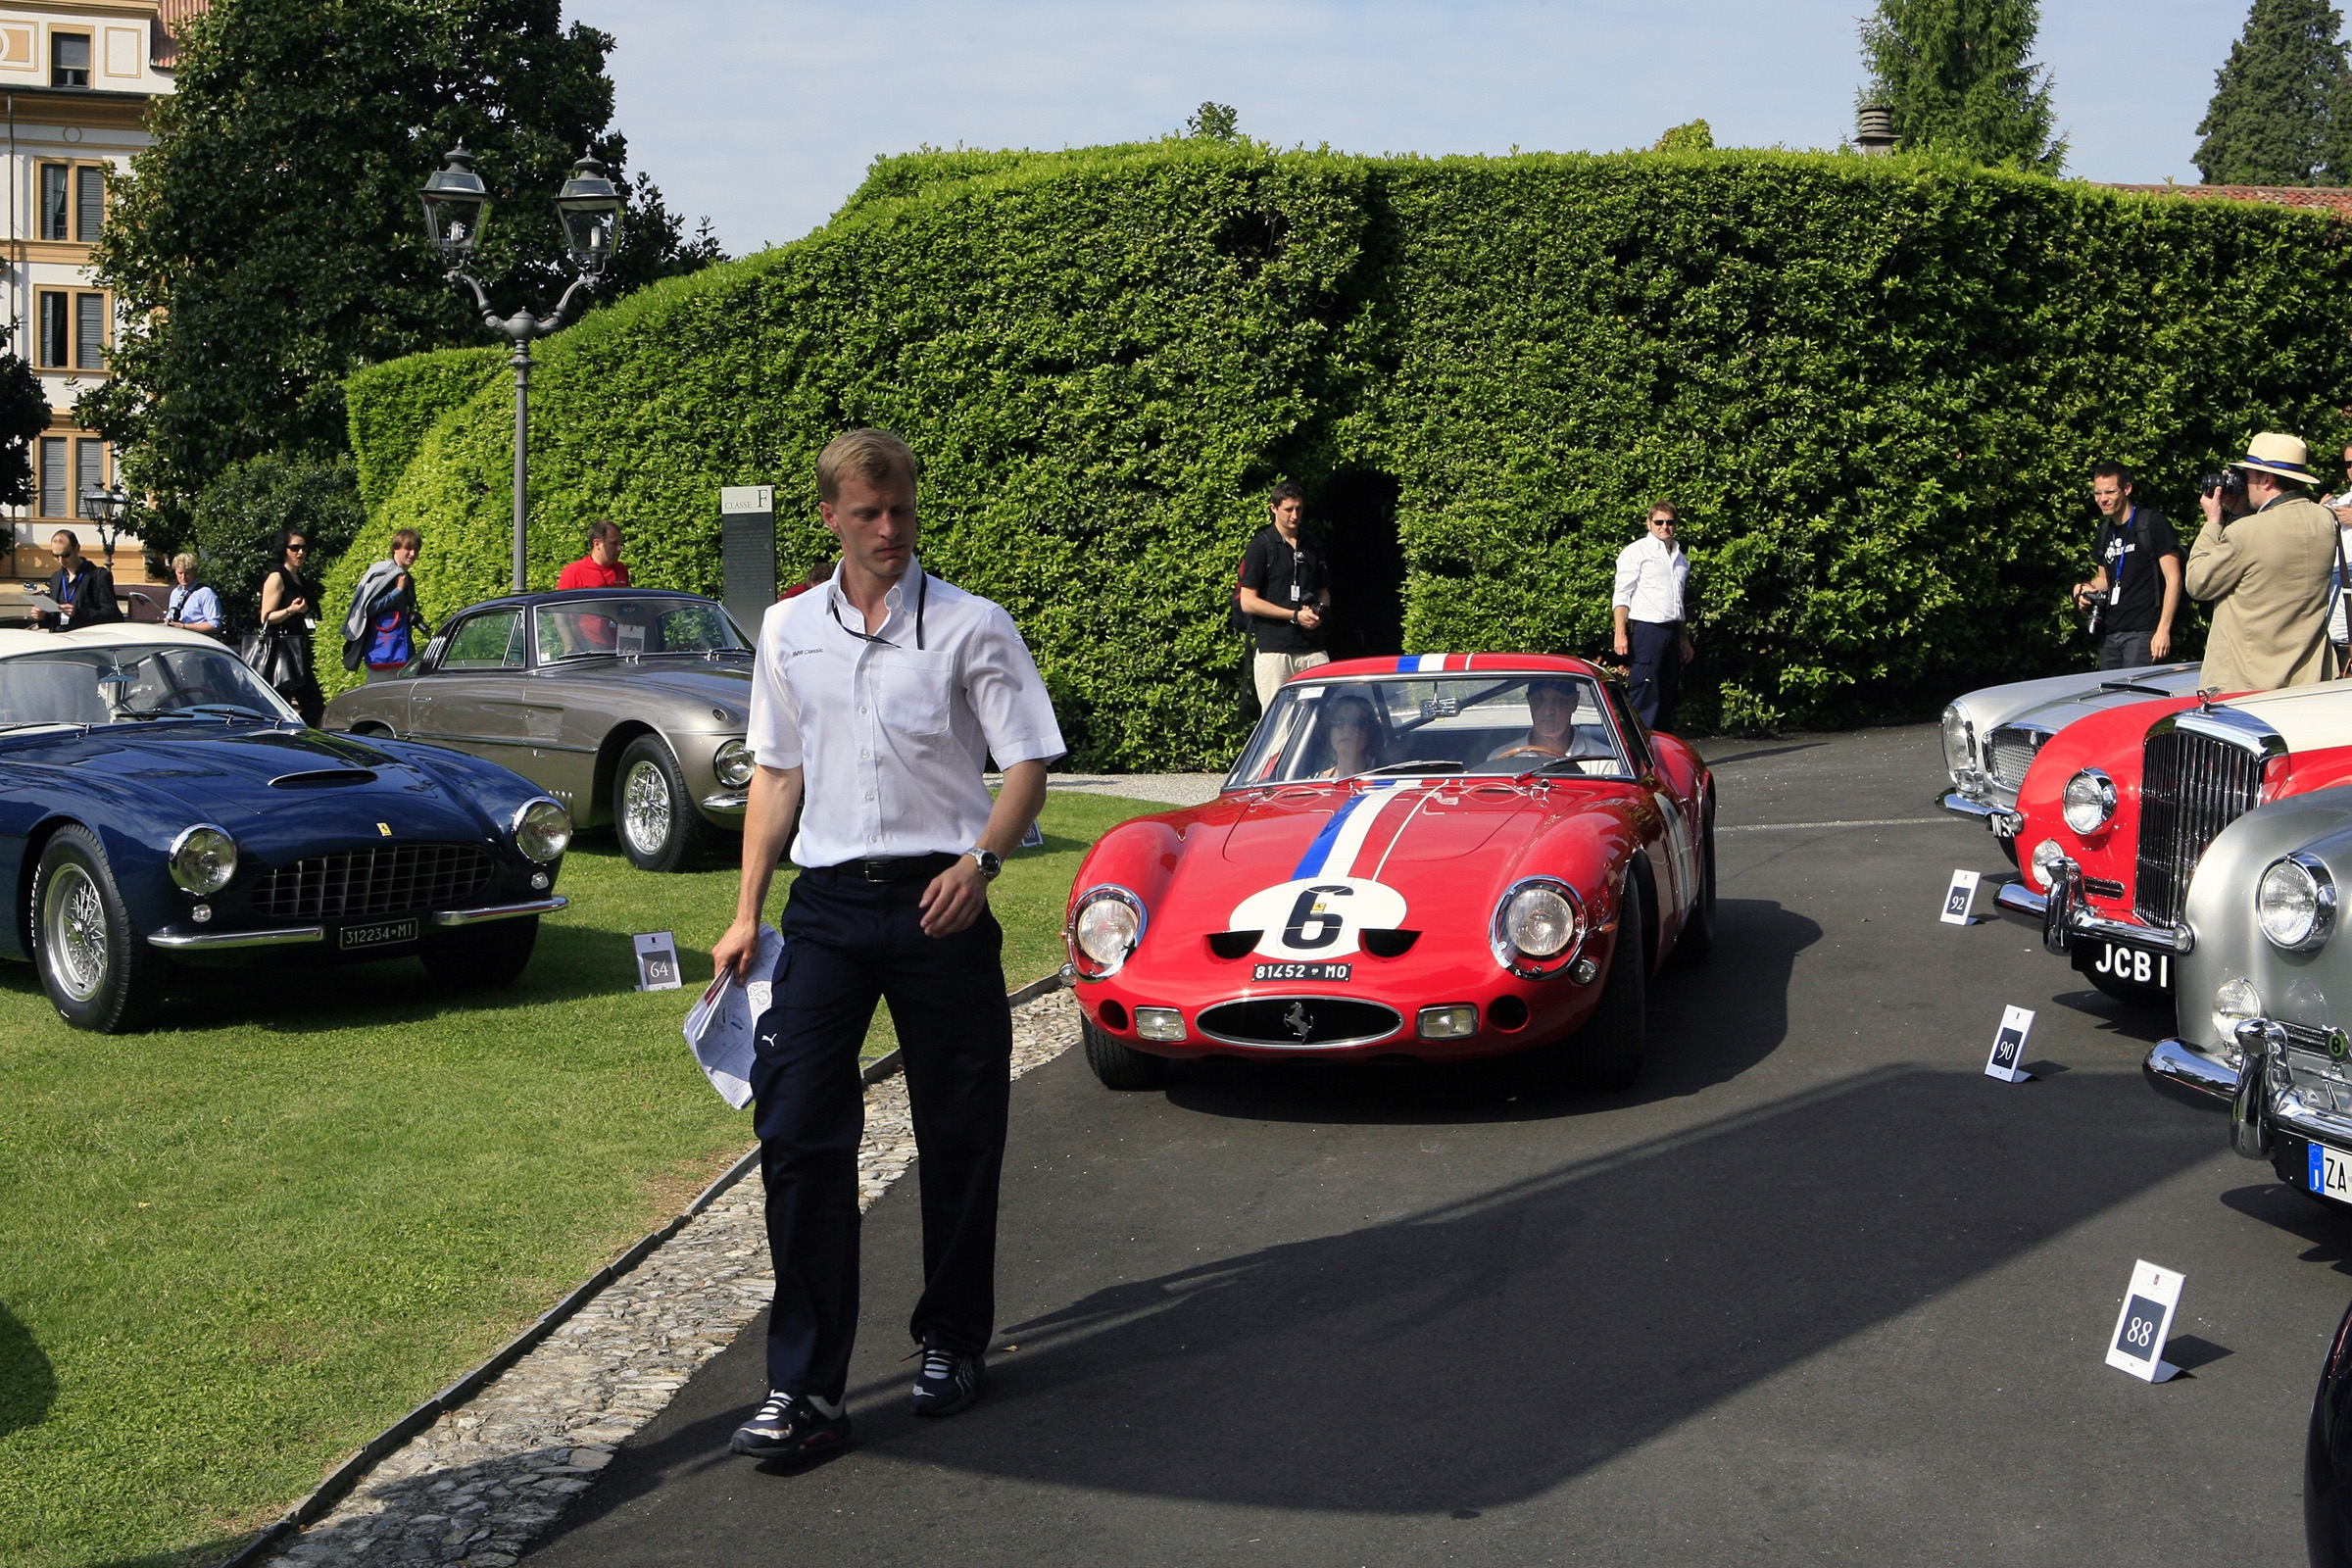 Before 10 am the cars are guided to their spot of fame